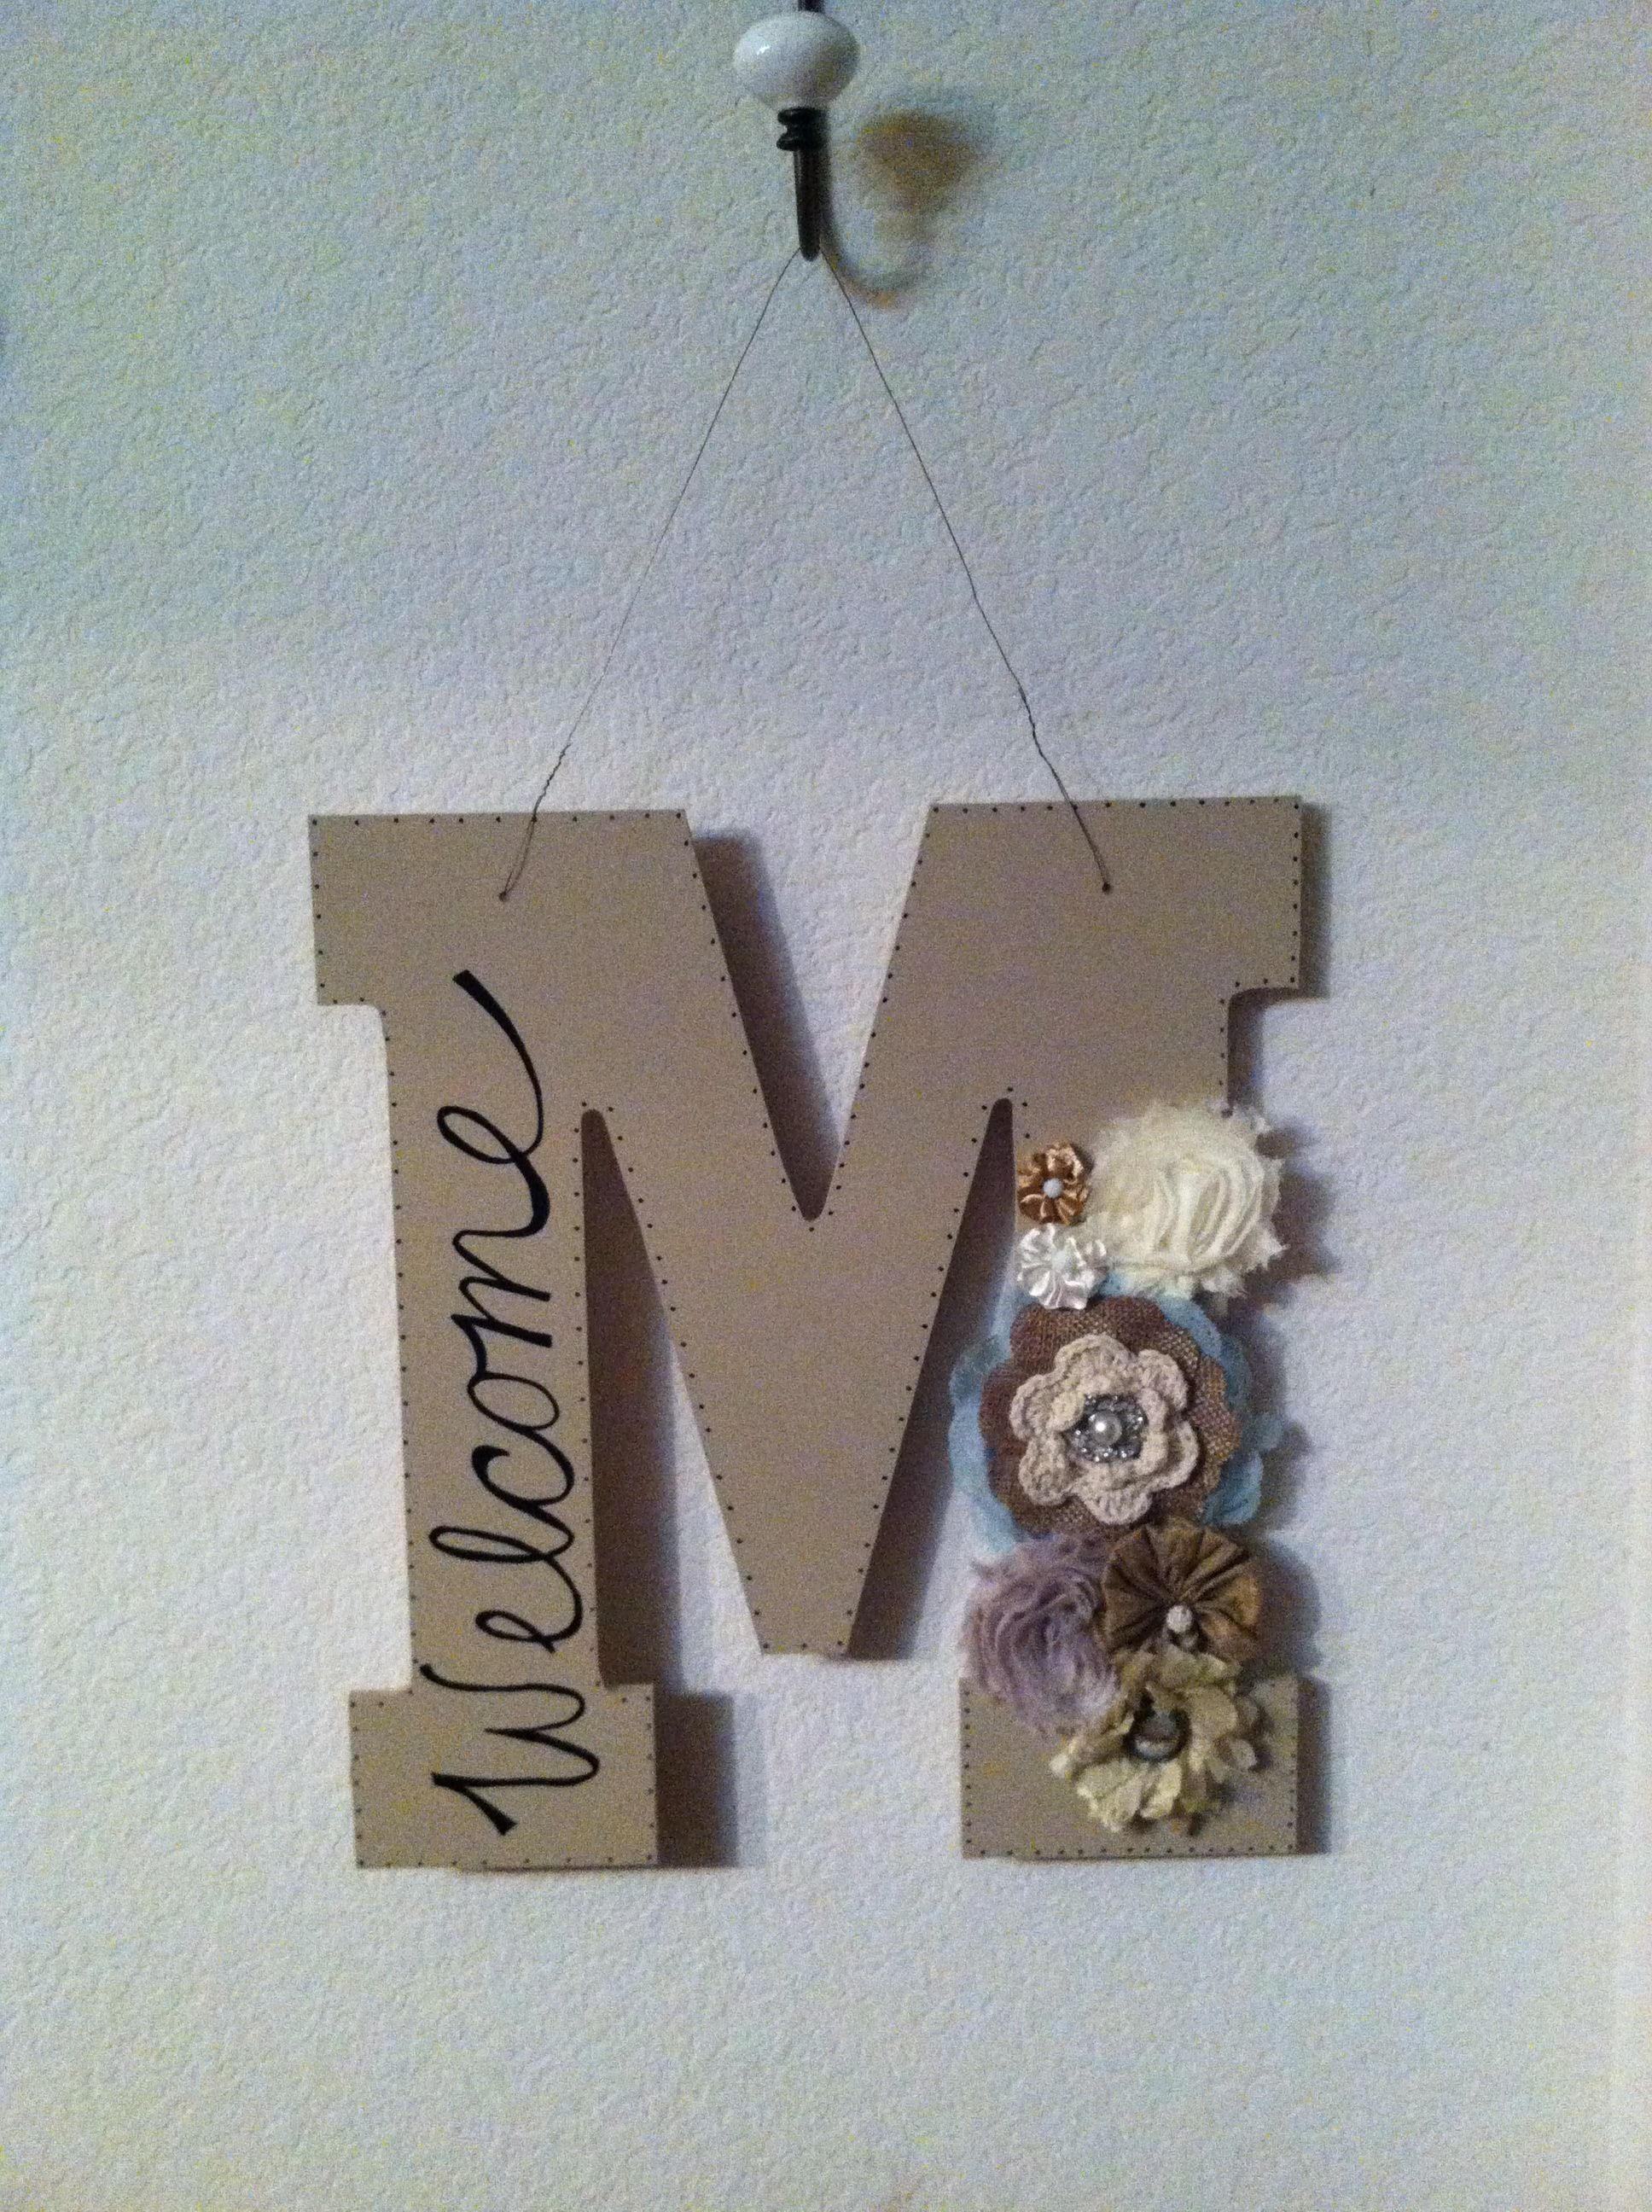 Pin by Leah Swayze Floyd on Home Decor   Diy home decor projects ...